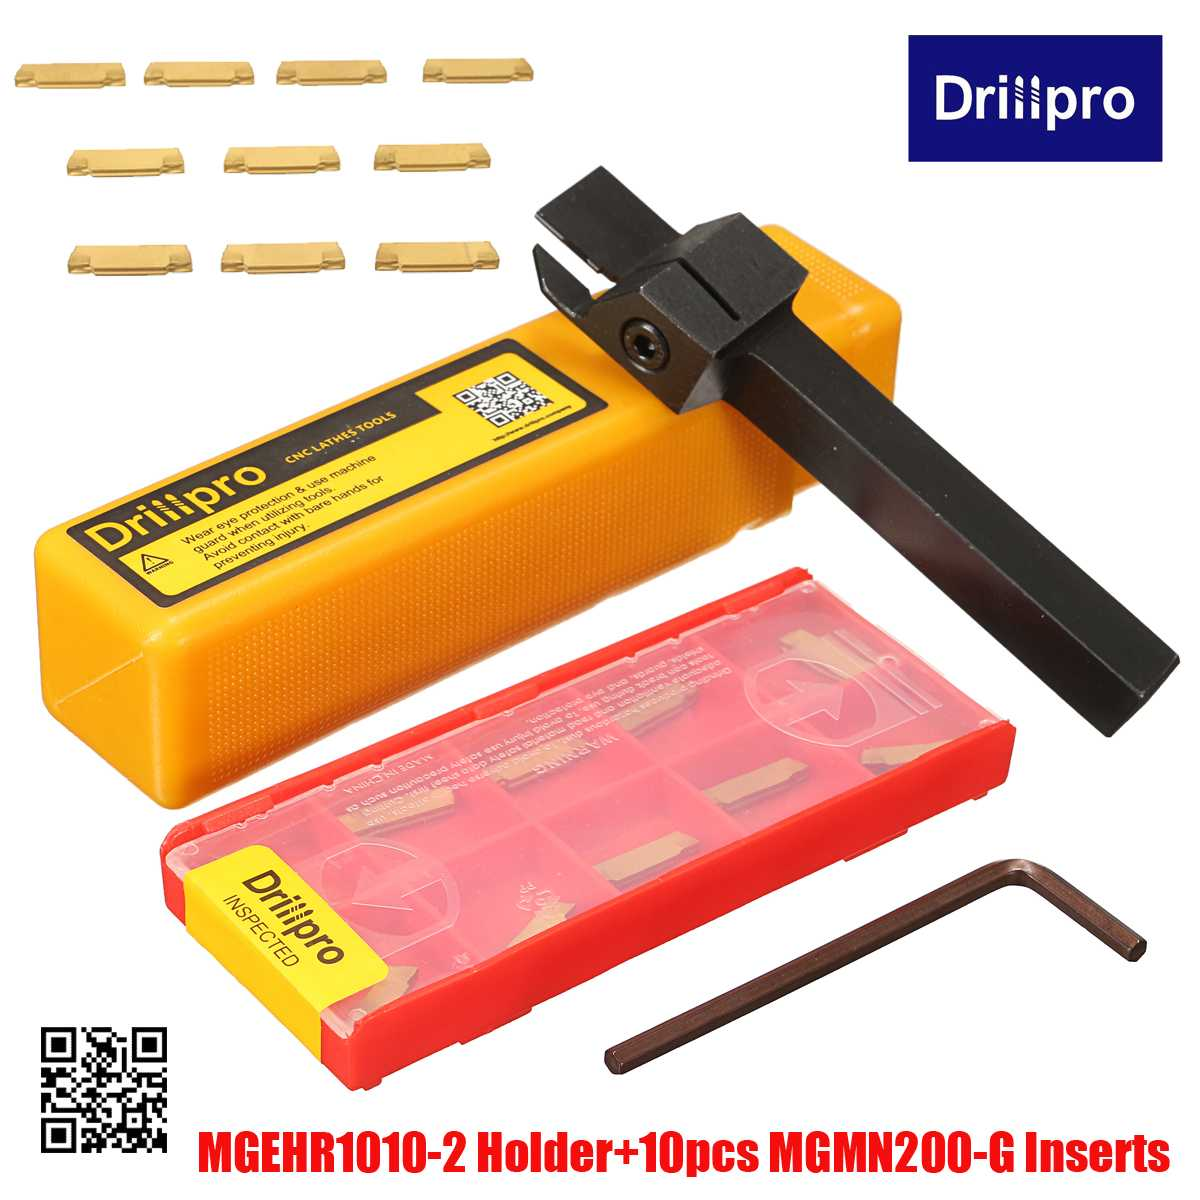 MGEHR1010-2 1pcs Grooving Tool Holder And 10pcs Blade MGMN200-G Grooving Inserts CNC Lathe Cutter For Turning Tool